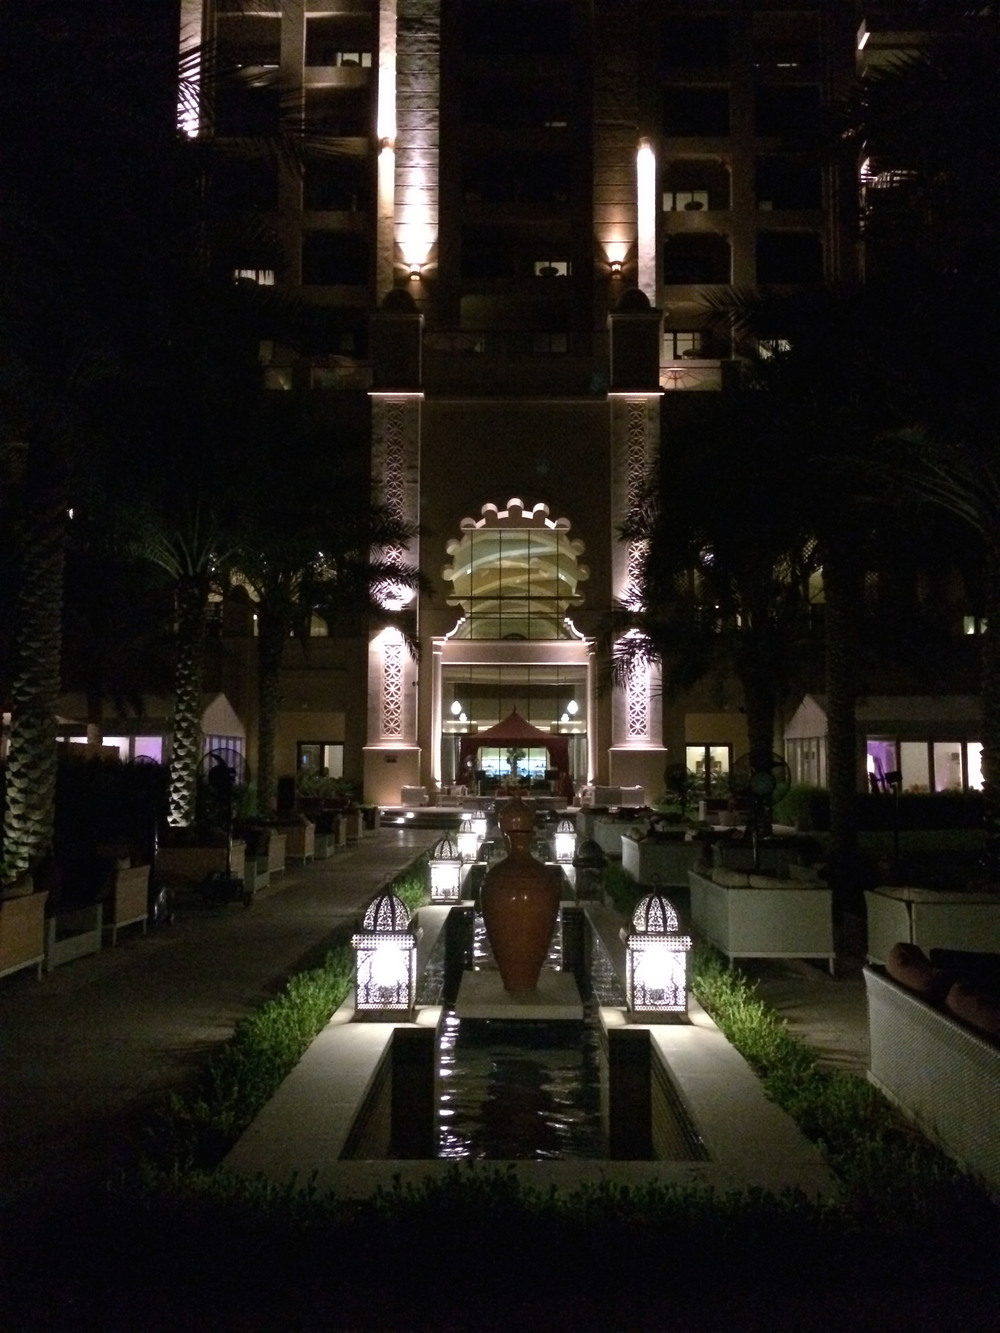 The hotel outside at night